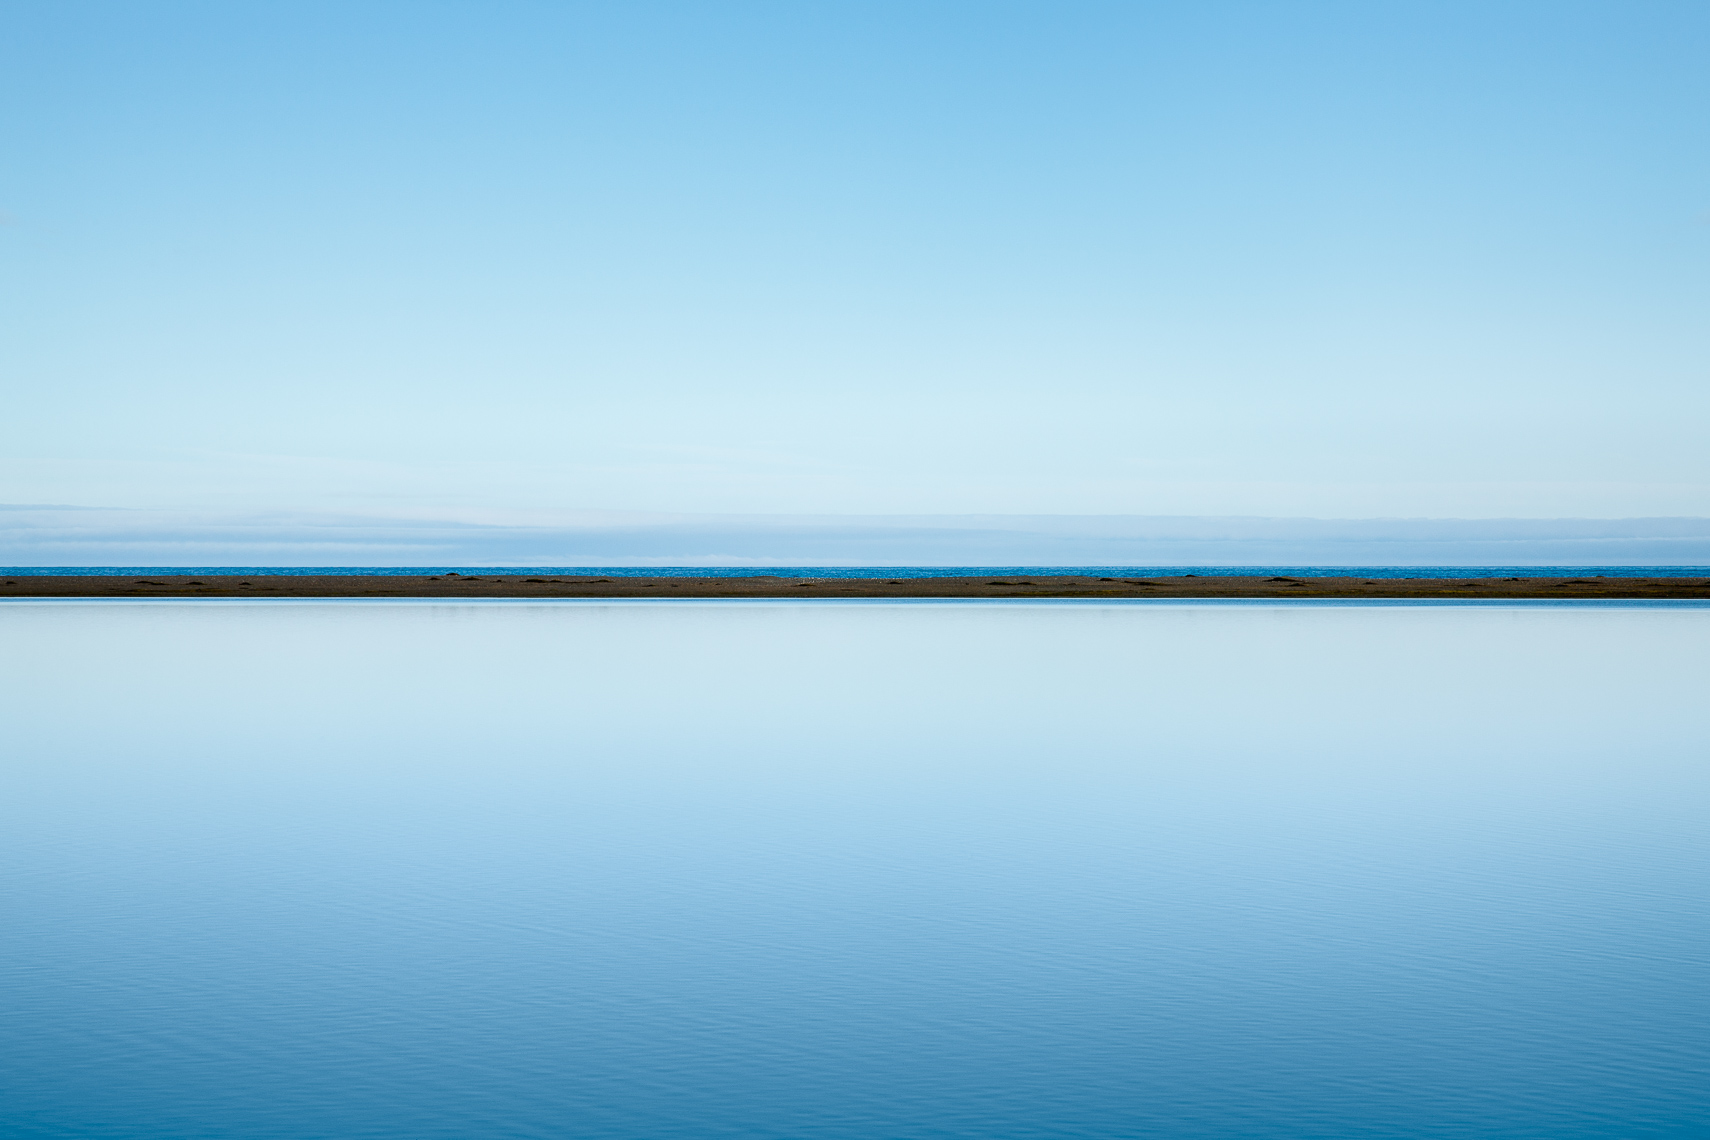 The Art of Stillness - Blue Lagoon I